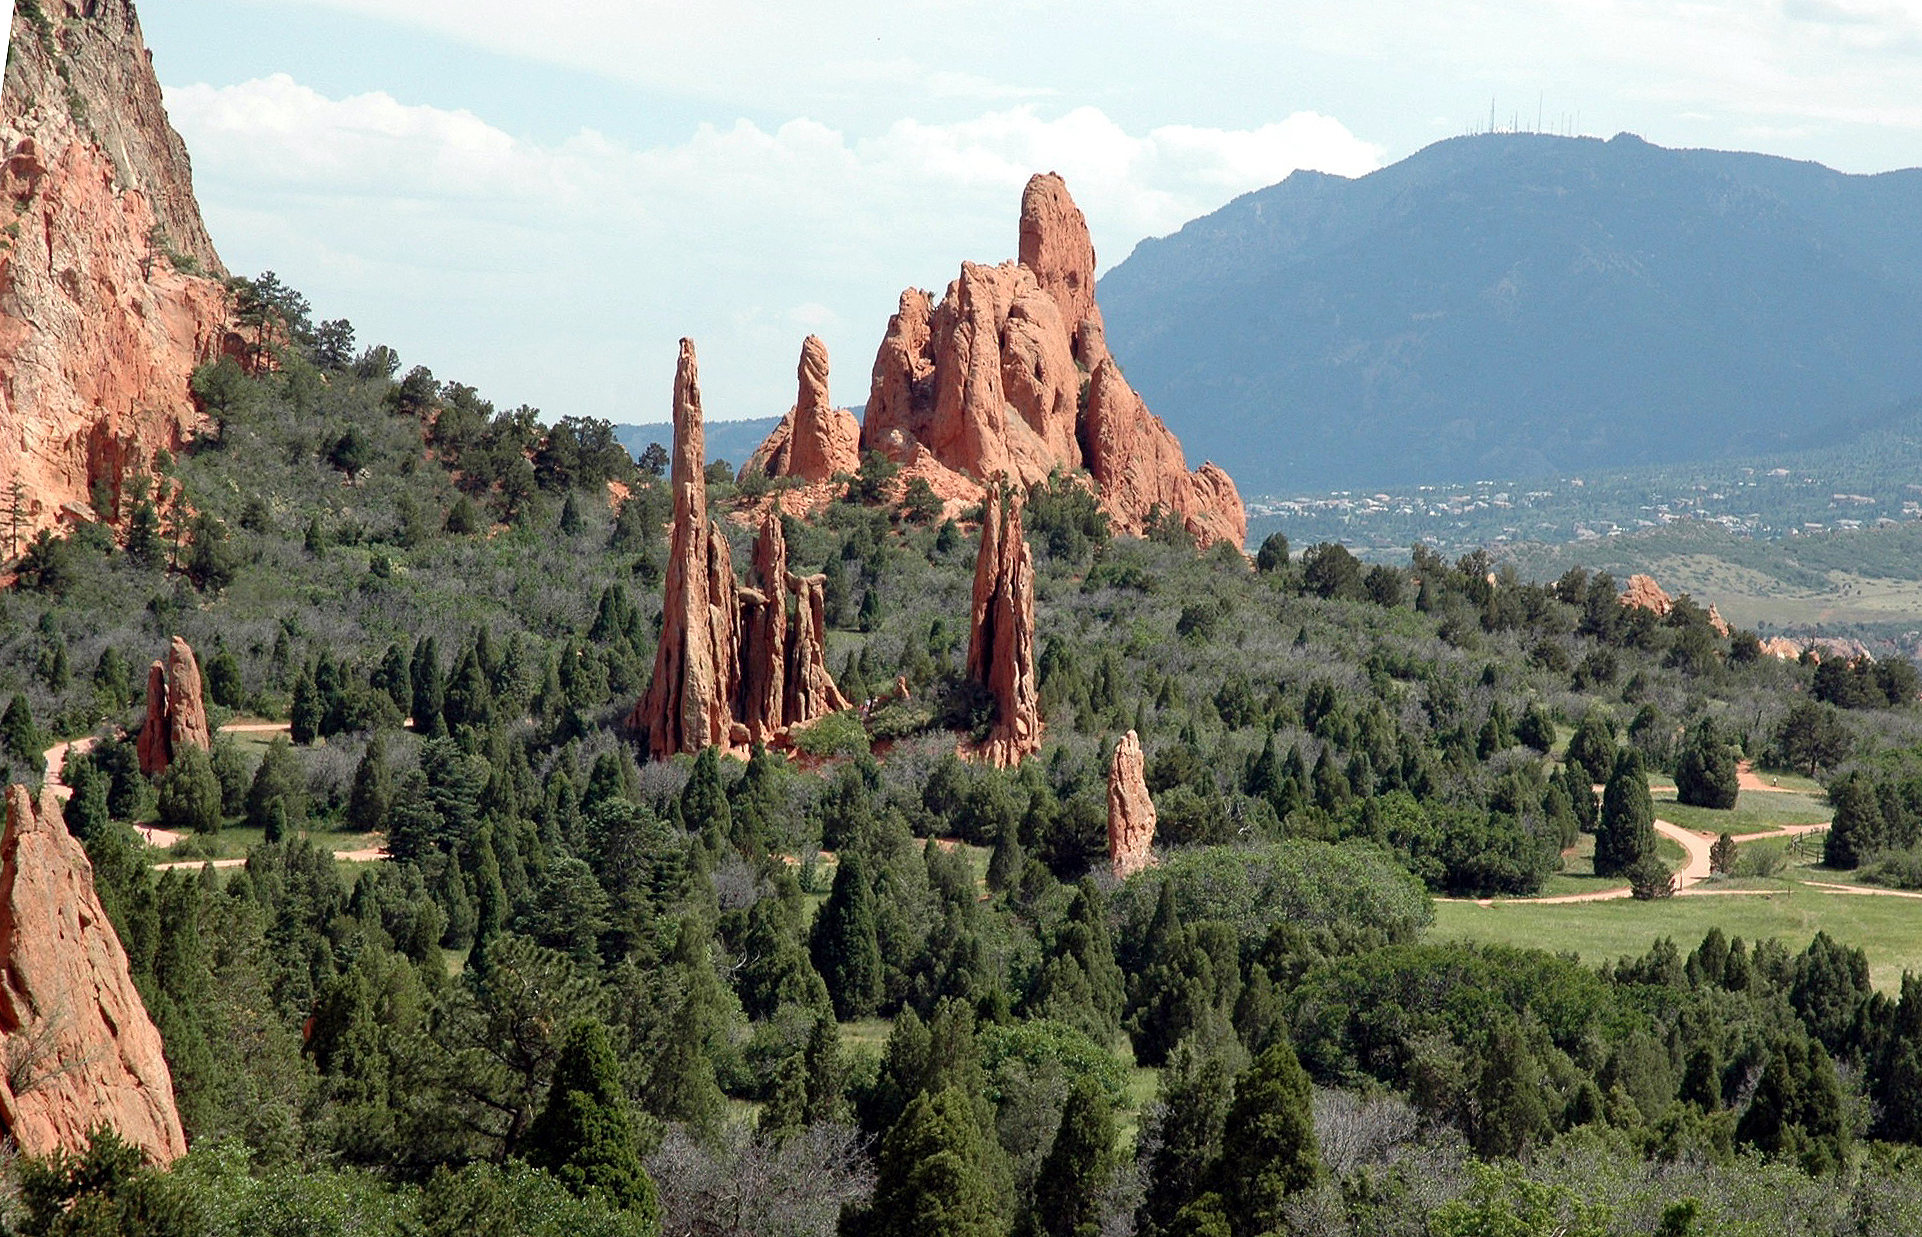 Garden Of The Gods, A Public Park Famous For Its Towering Red Rock  Formations.